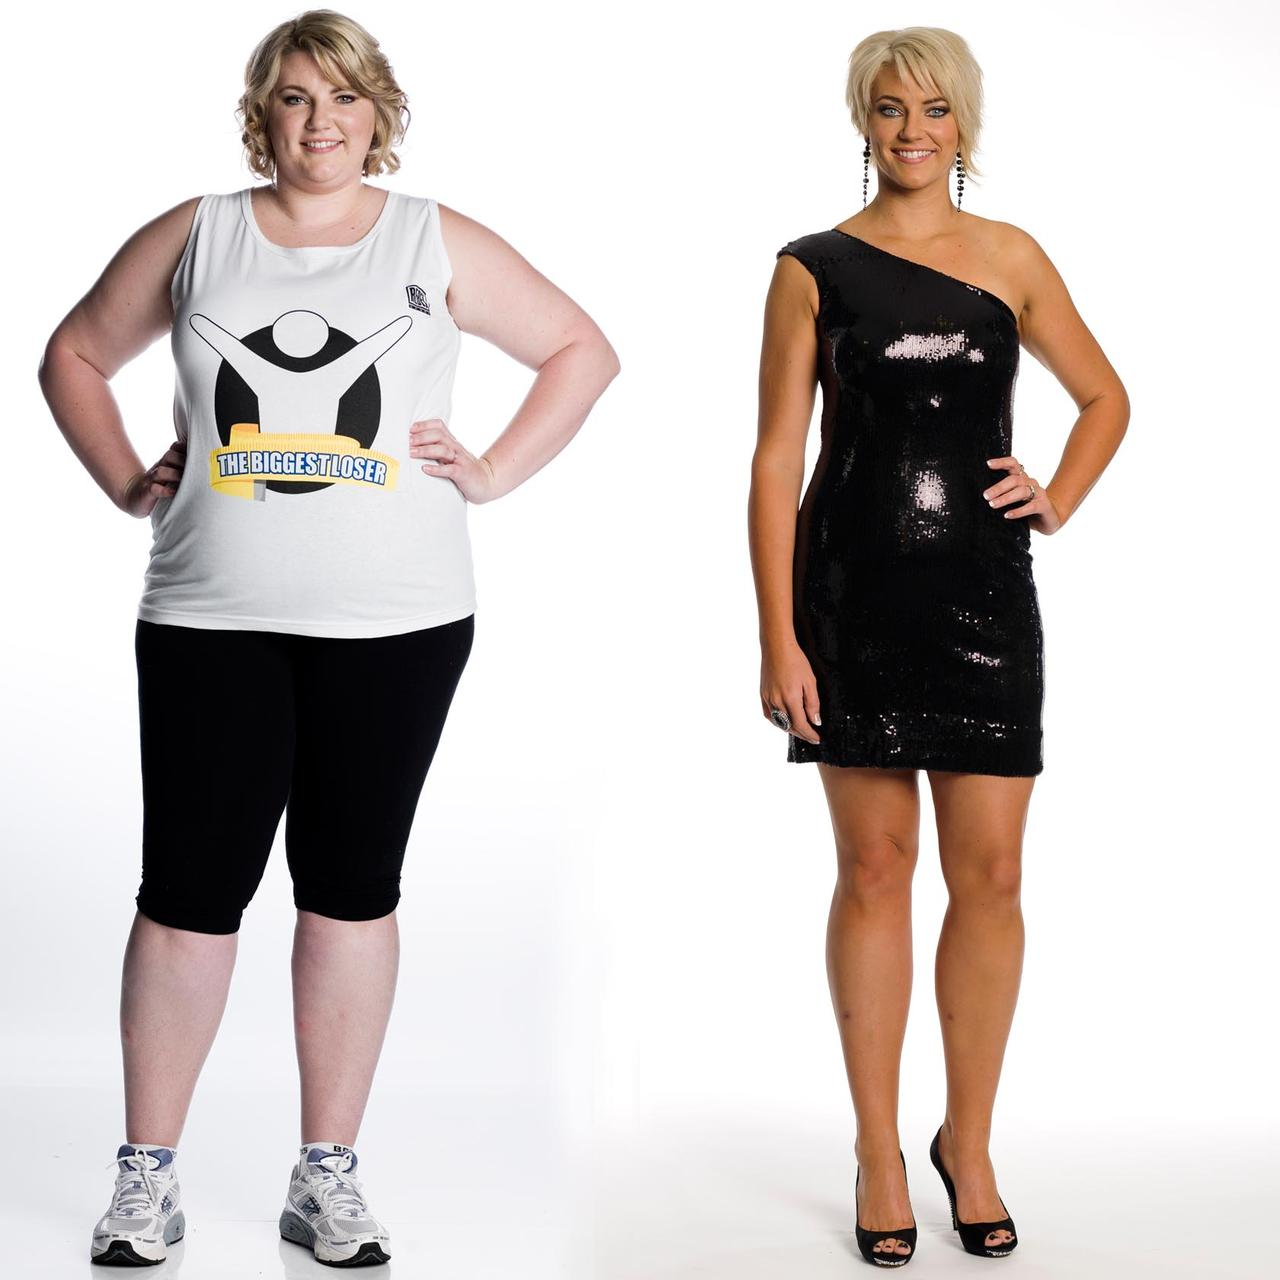 20 The Biggest Loser Weight Loss Transformations That Will ...